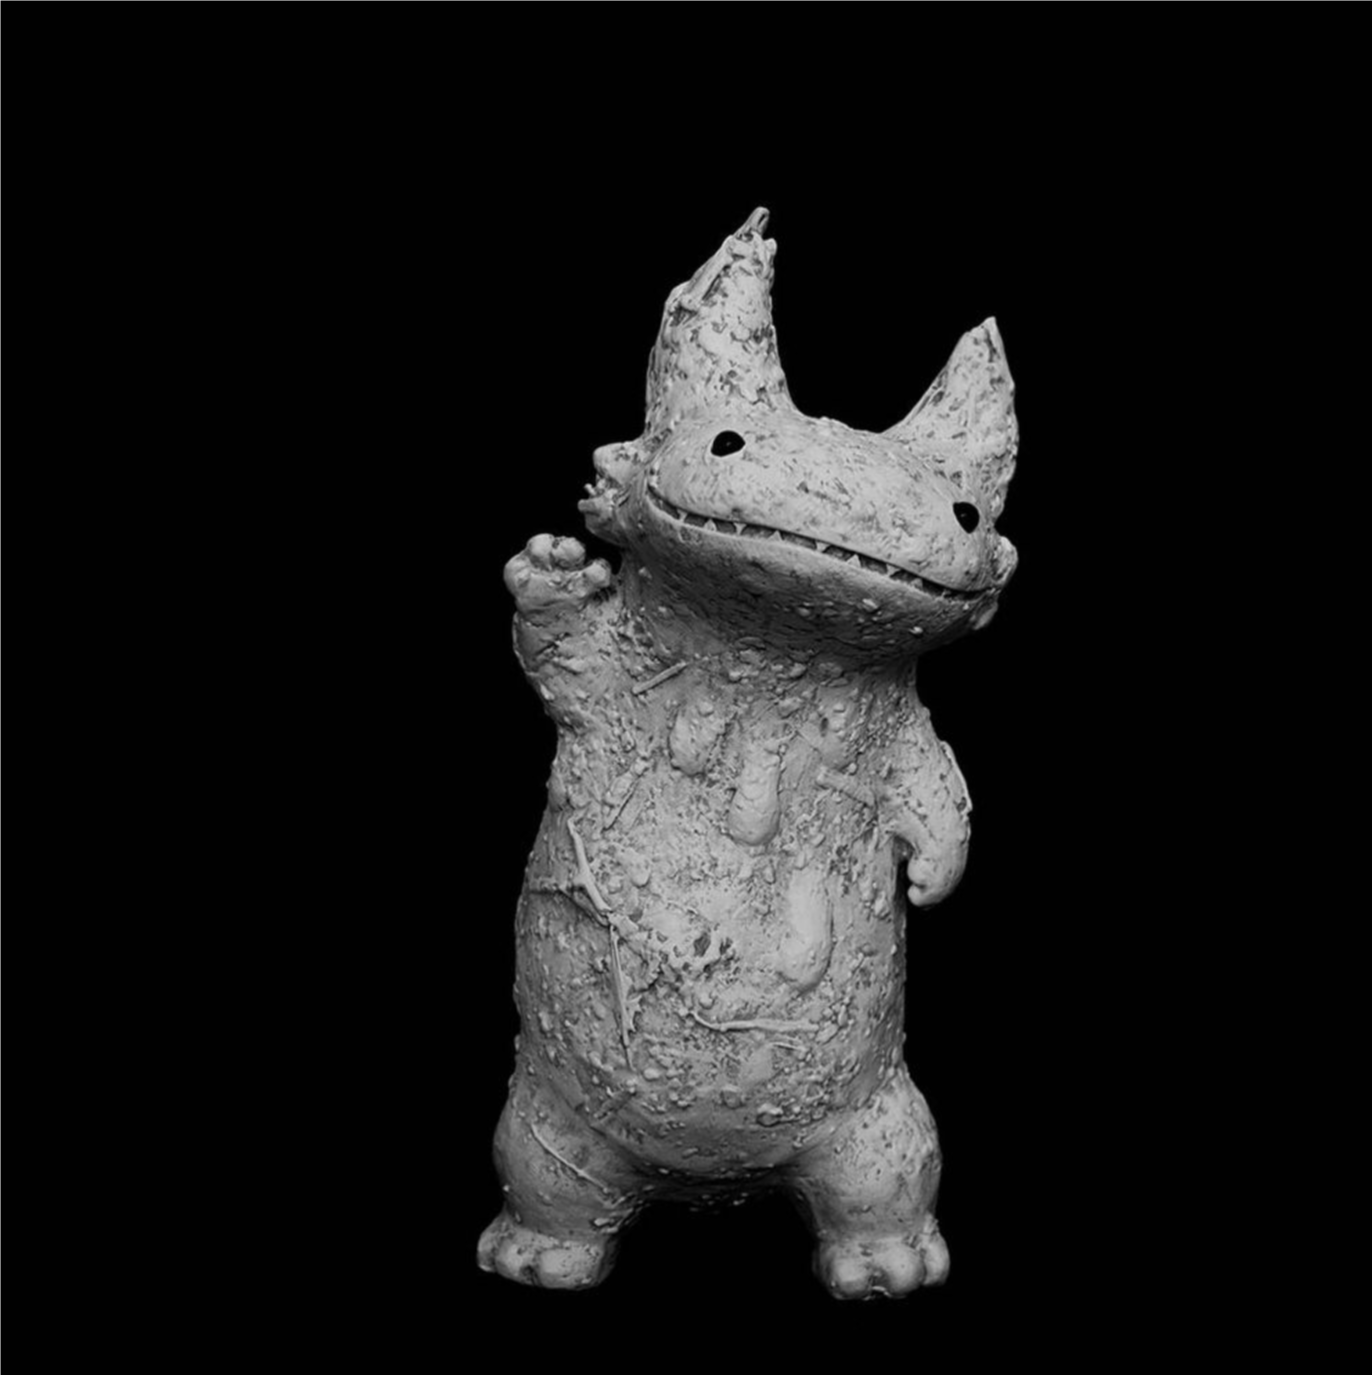 Kaiju Byron Native variant by Shoko Nakazawa being released at Cute Aggression solo exhibition with the Little Hut 1